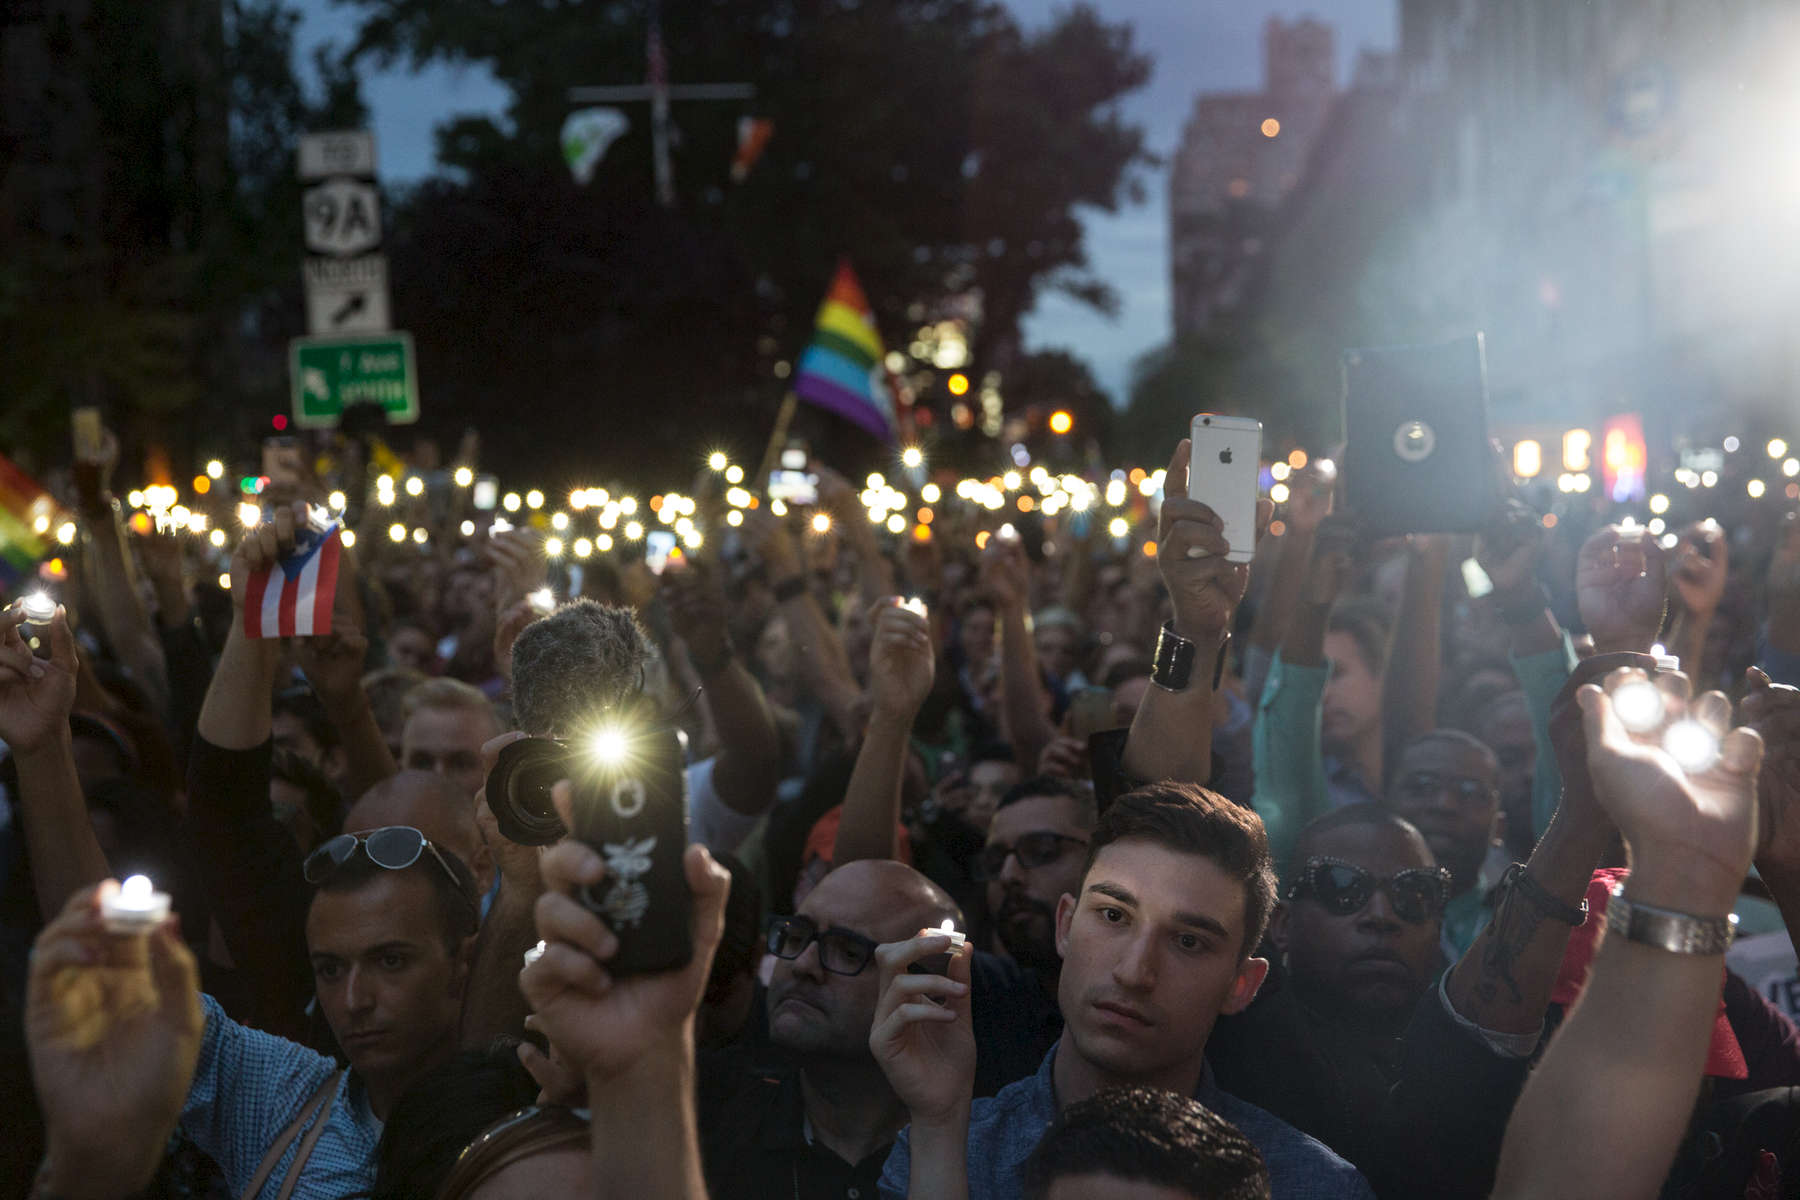 Thousands attend a vigil on Christopher Street outside the Stonewall Inn in Manhattan on Monday, June 13, 2016 in response to the Orlando nightclub mass shooting. Michael Appleton/Mayoral Photography Office